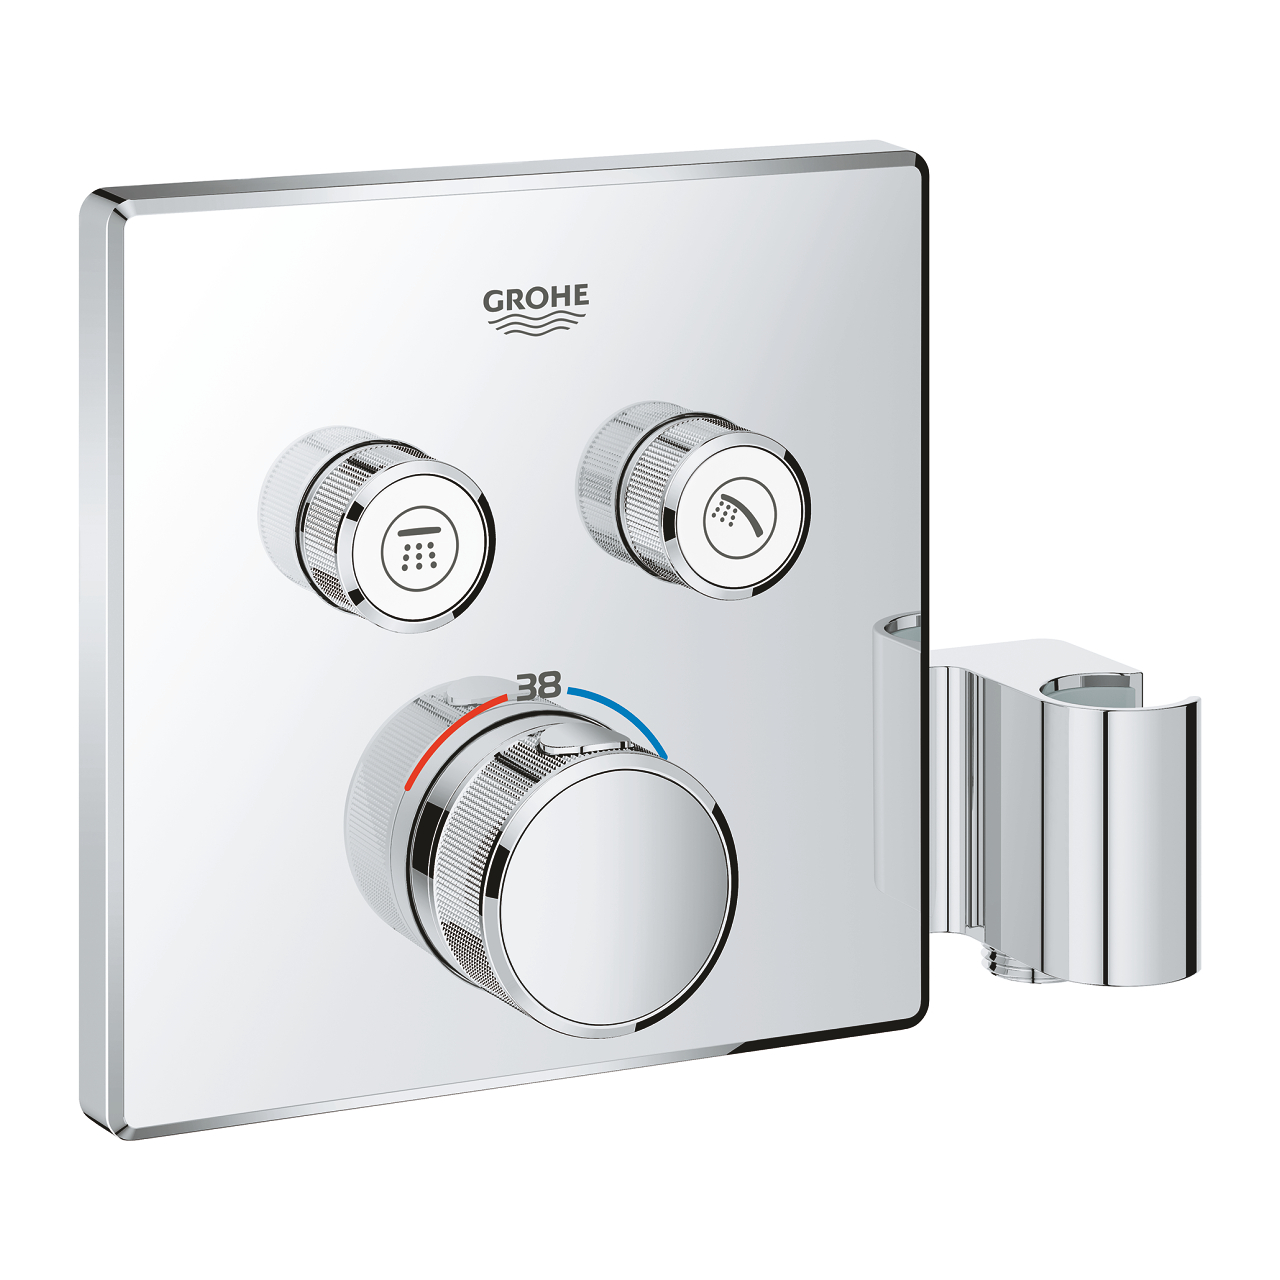 thermostat grohe grohtherm smartcontrol 29125000 online verkauf. Black Bedroom Furniture Sets. Home Design Ideas